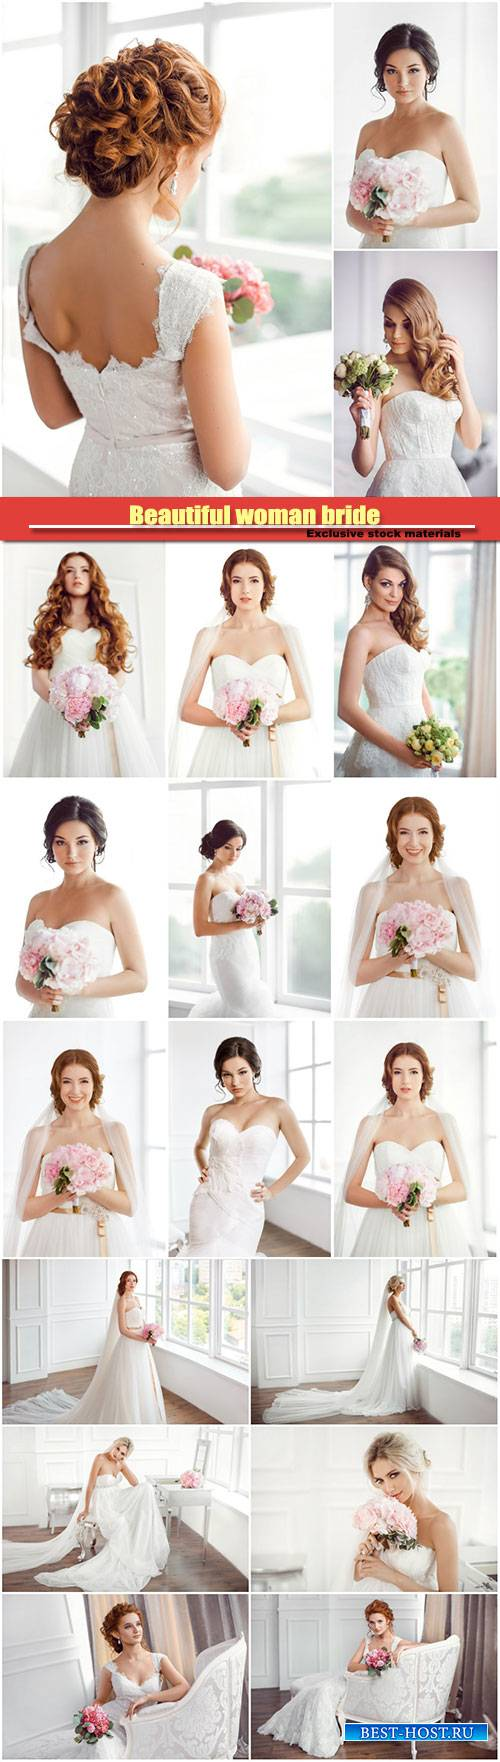 Beautiful woman bride with wedding bouquet